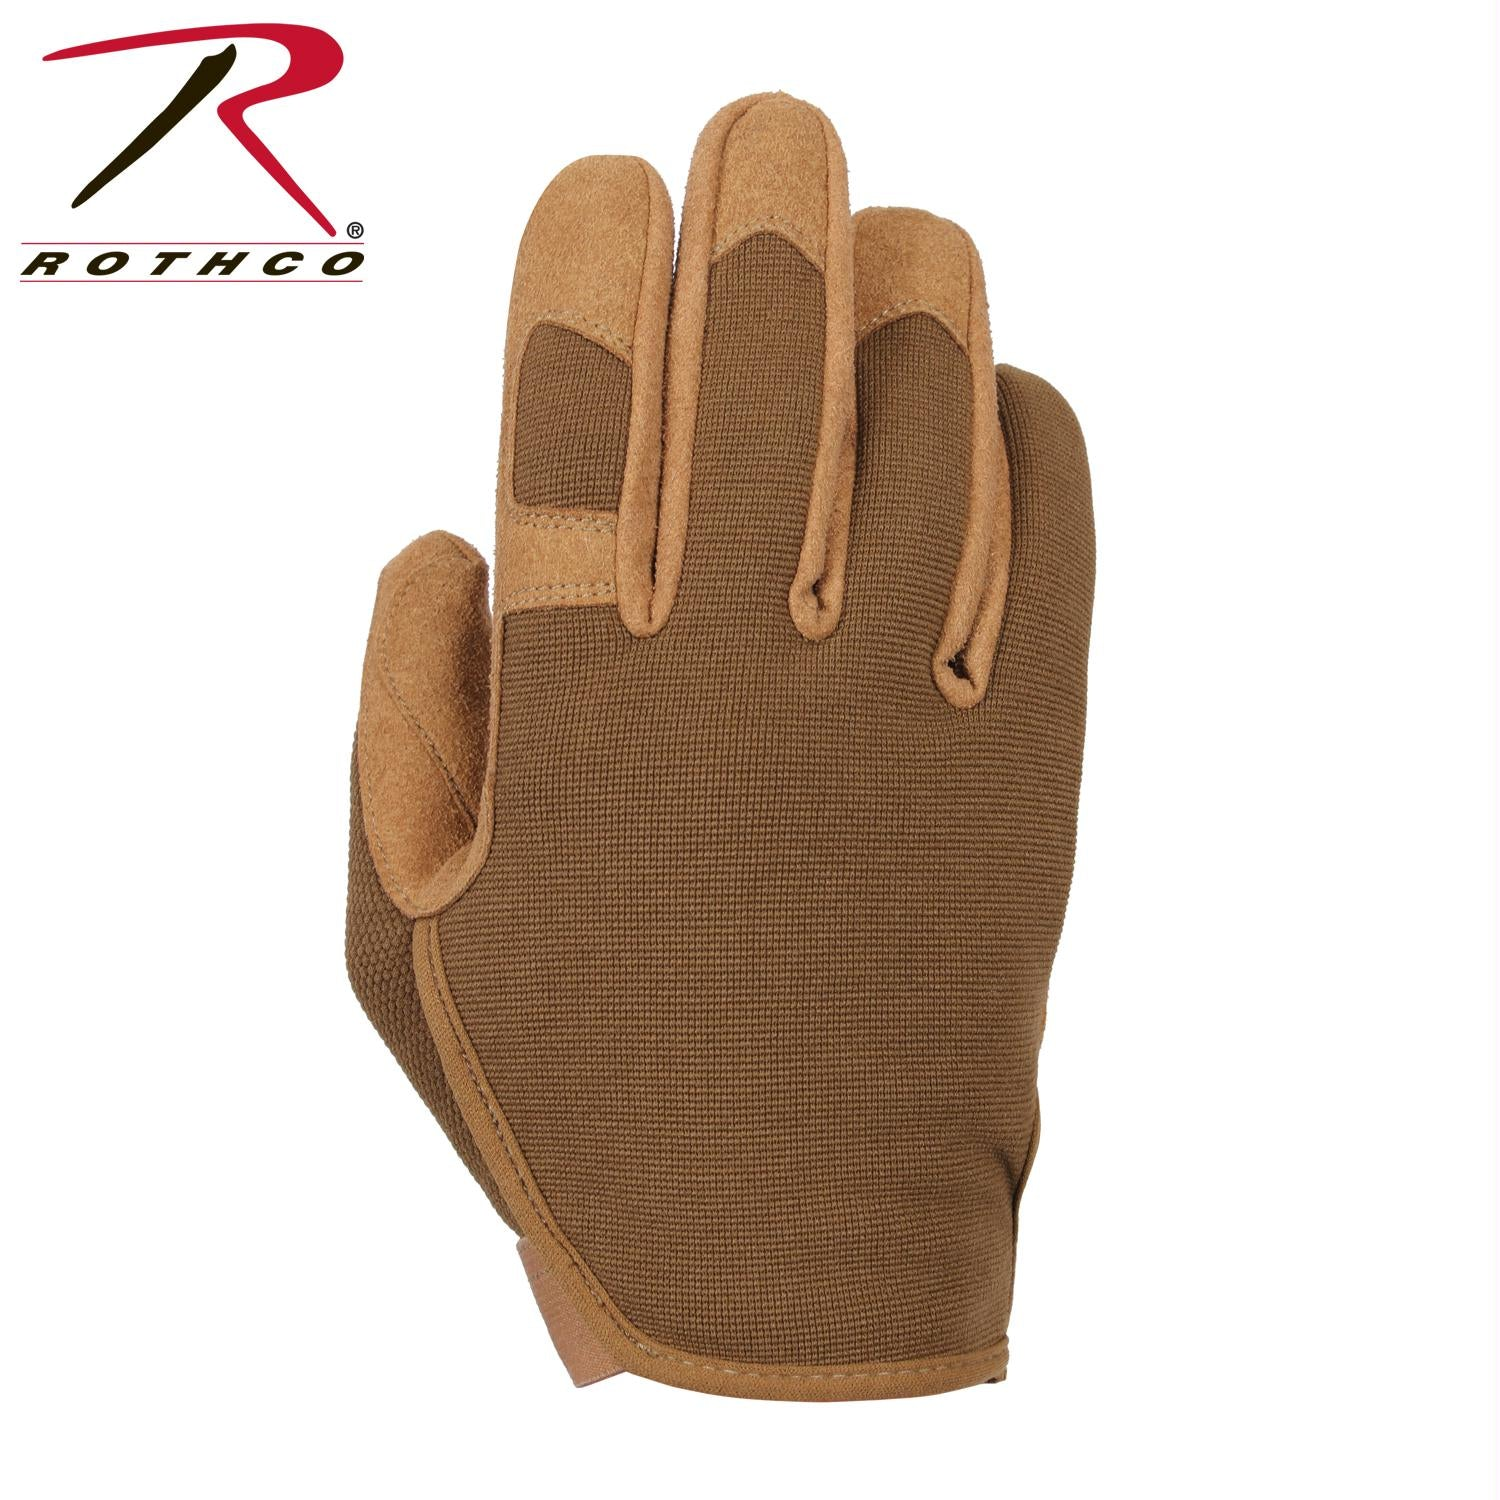 Rothco Ultra-light High Performance Gloves - Coyote Brown / S